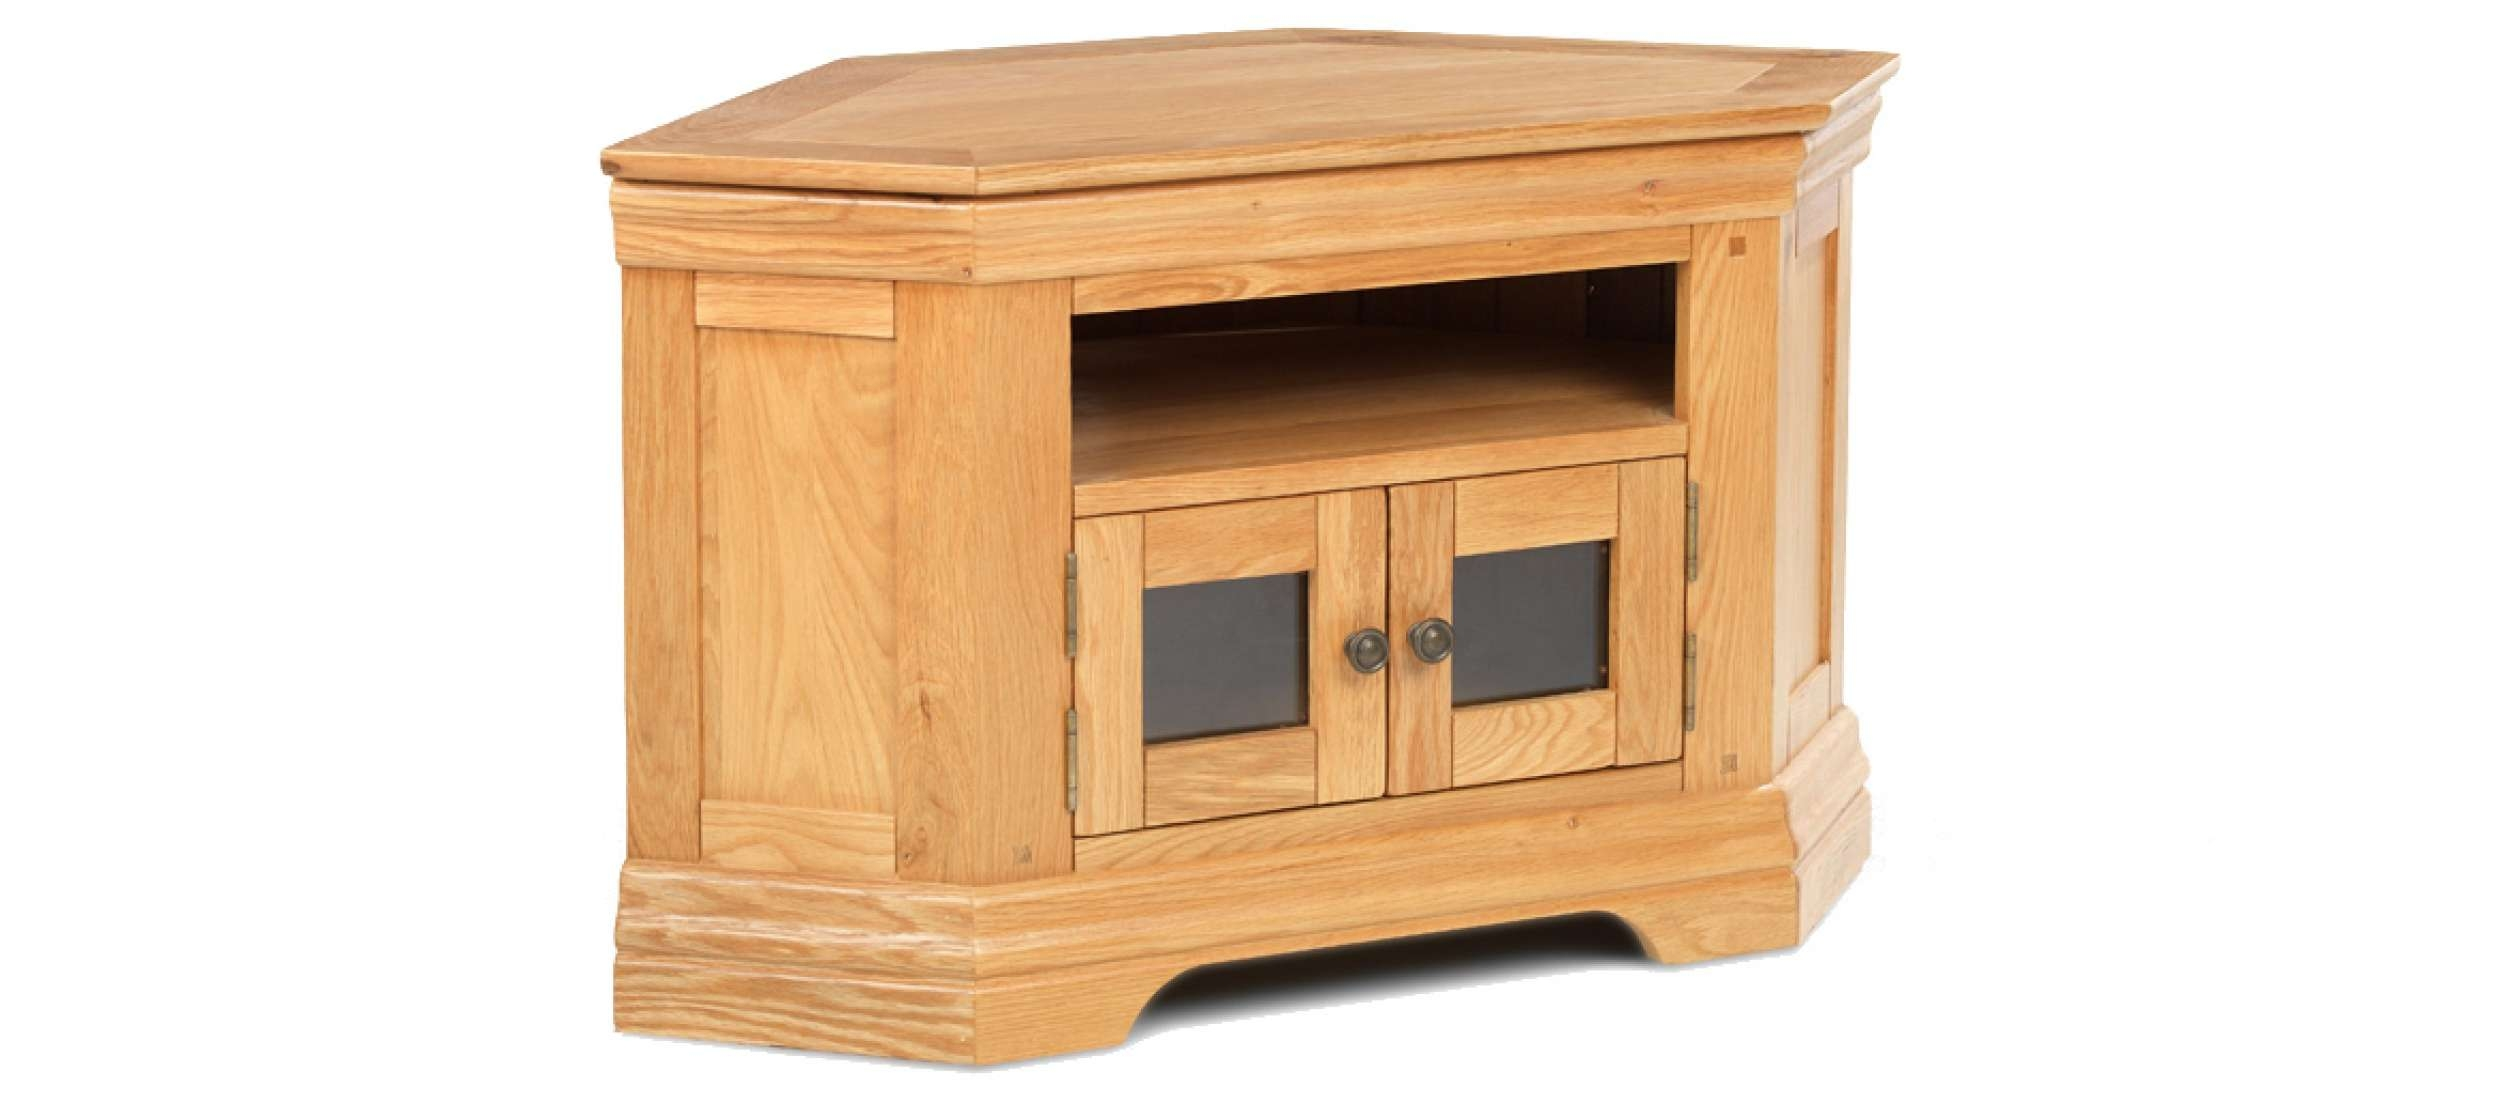 Constance Oak Corner Tv Cabinet | Quercus Living Intended For Wood Corner Tv Cabinets (View 4 of 20)